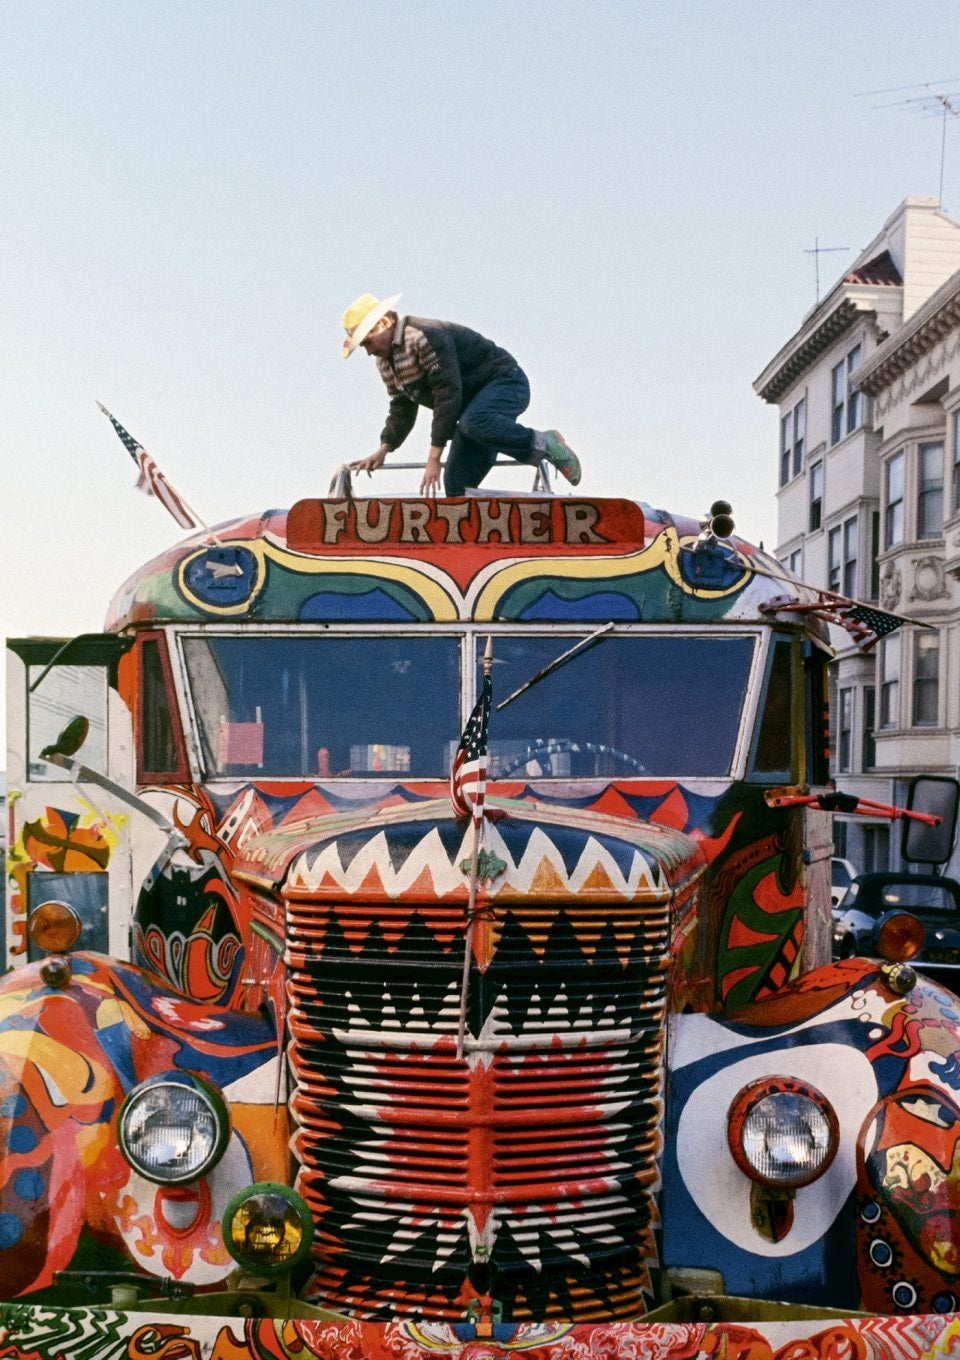 Man standing on top of an eclectic painted bus.